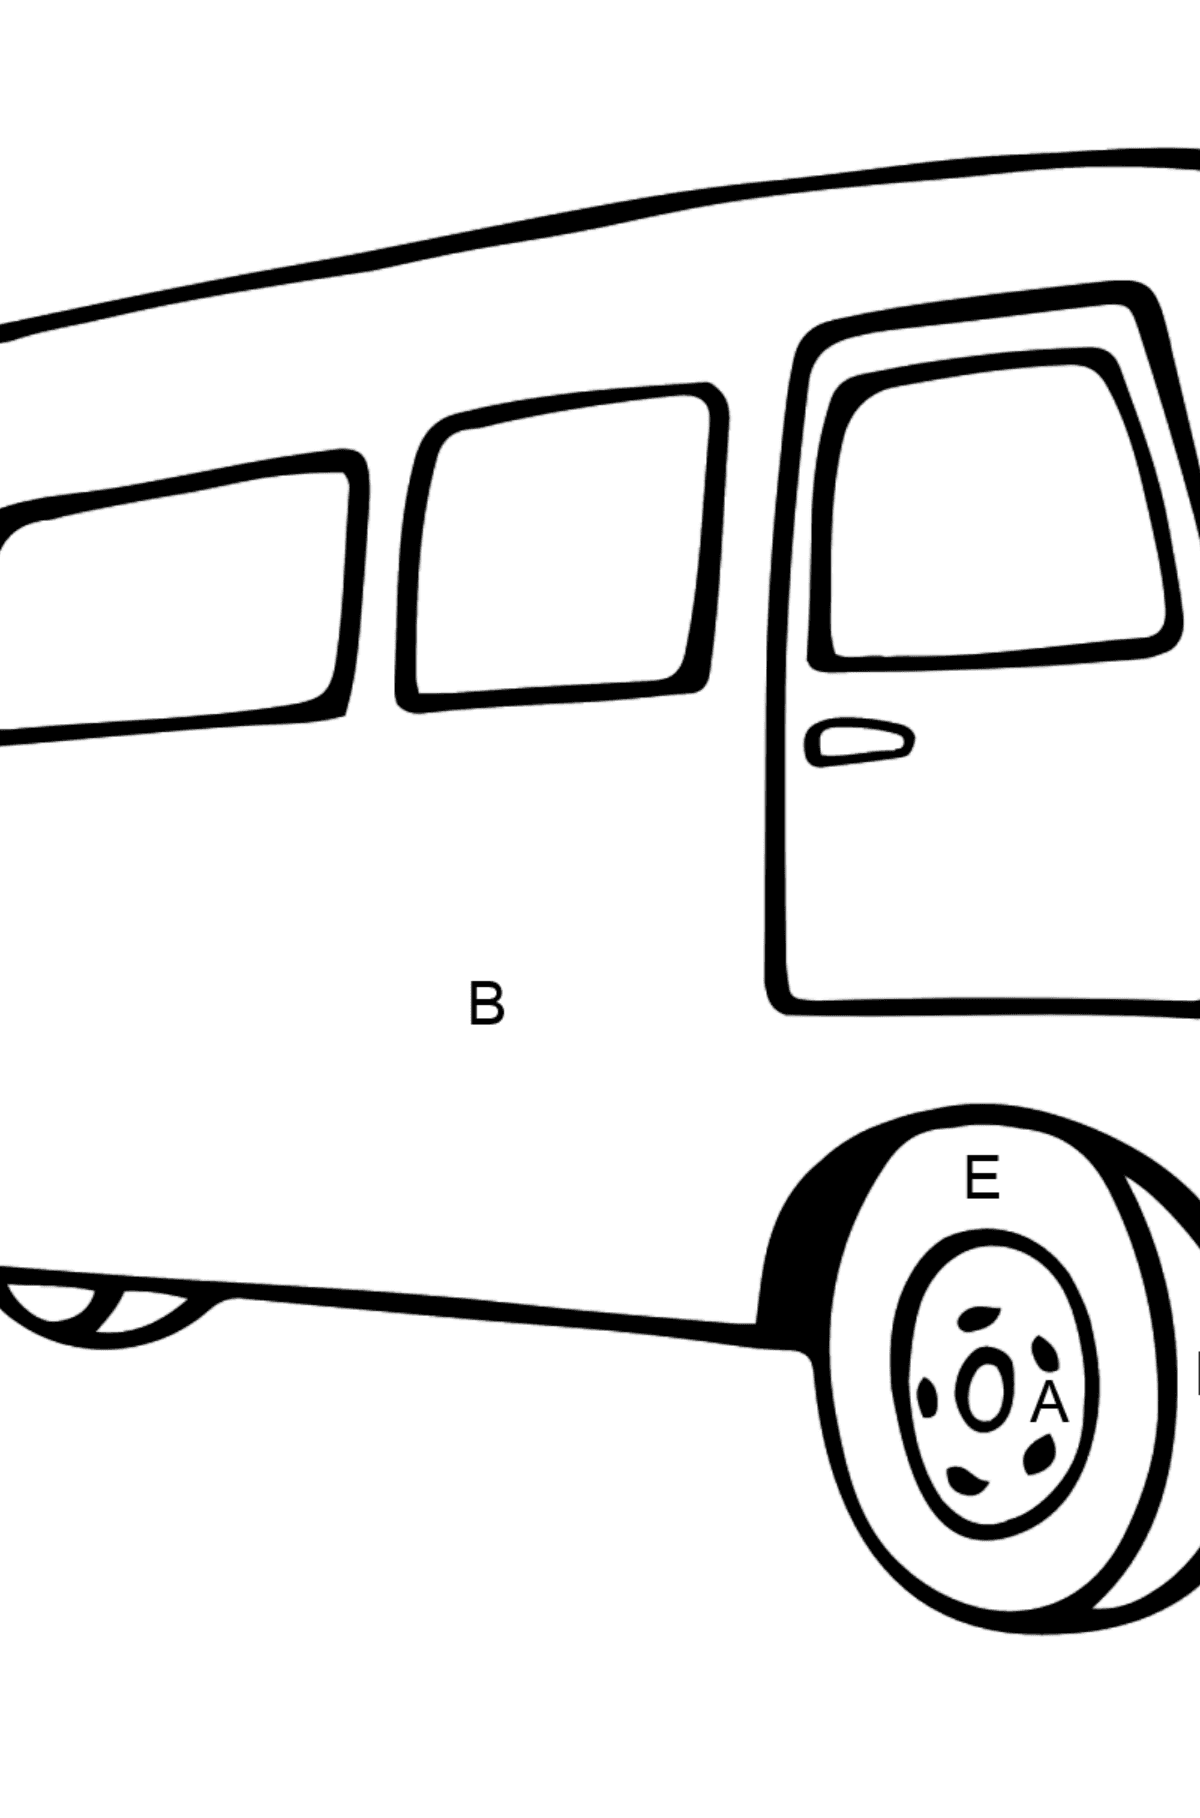 Simple Coloring Page - A Joyful Bus - Coloring by Letters for Kids